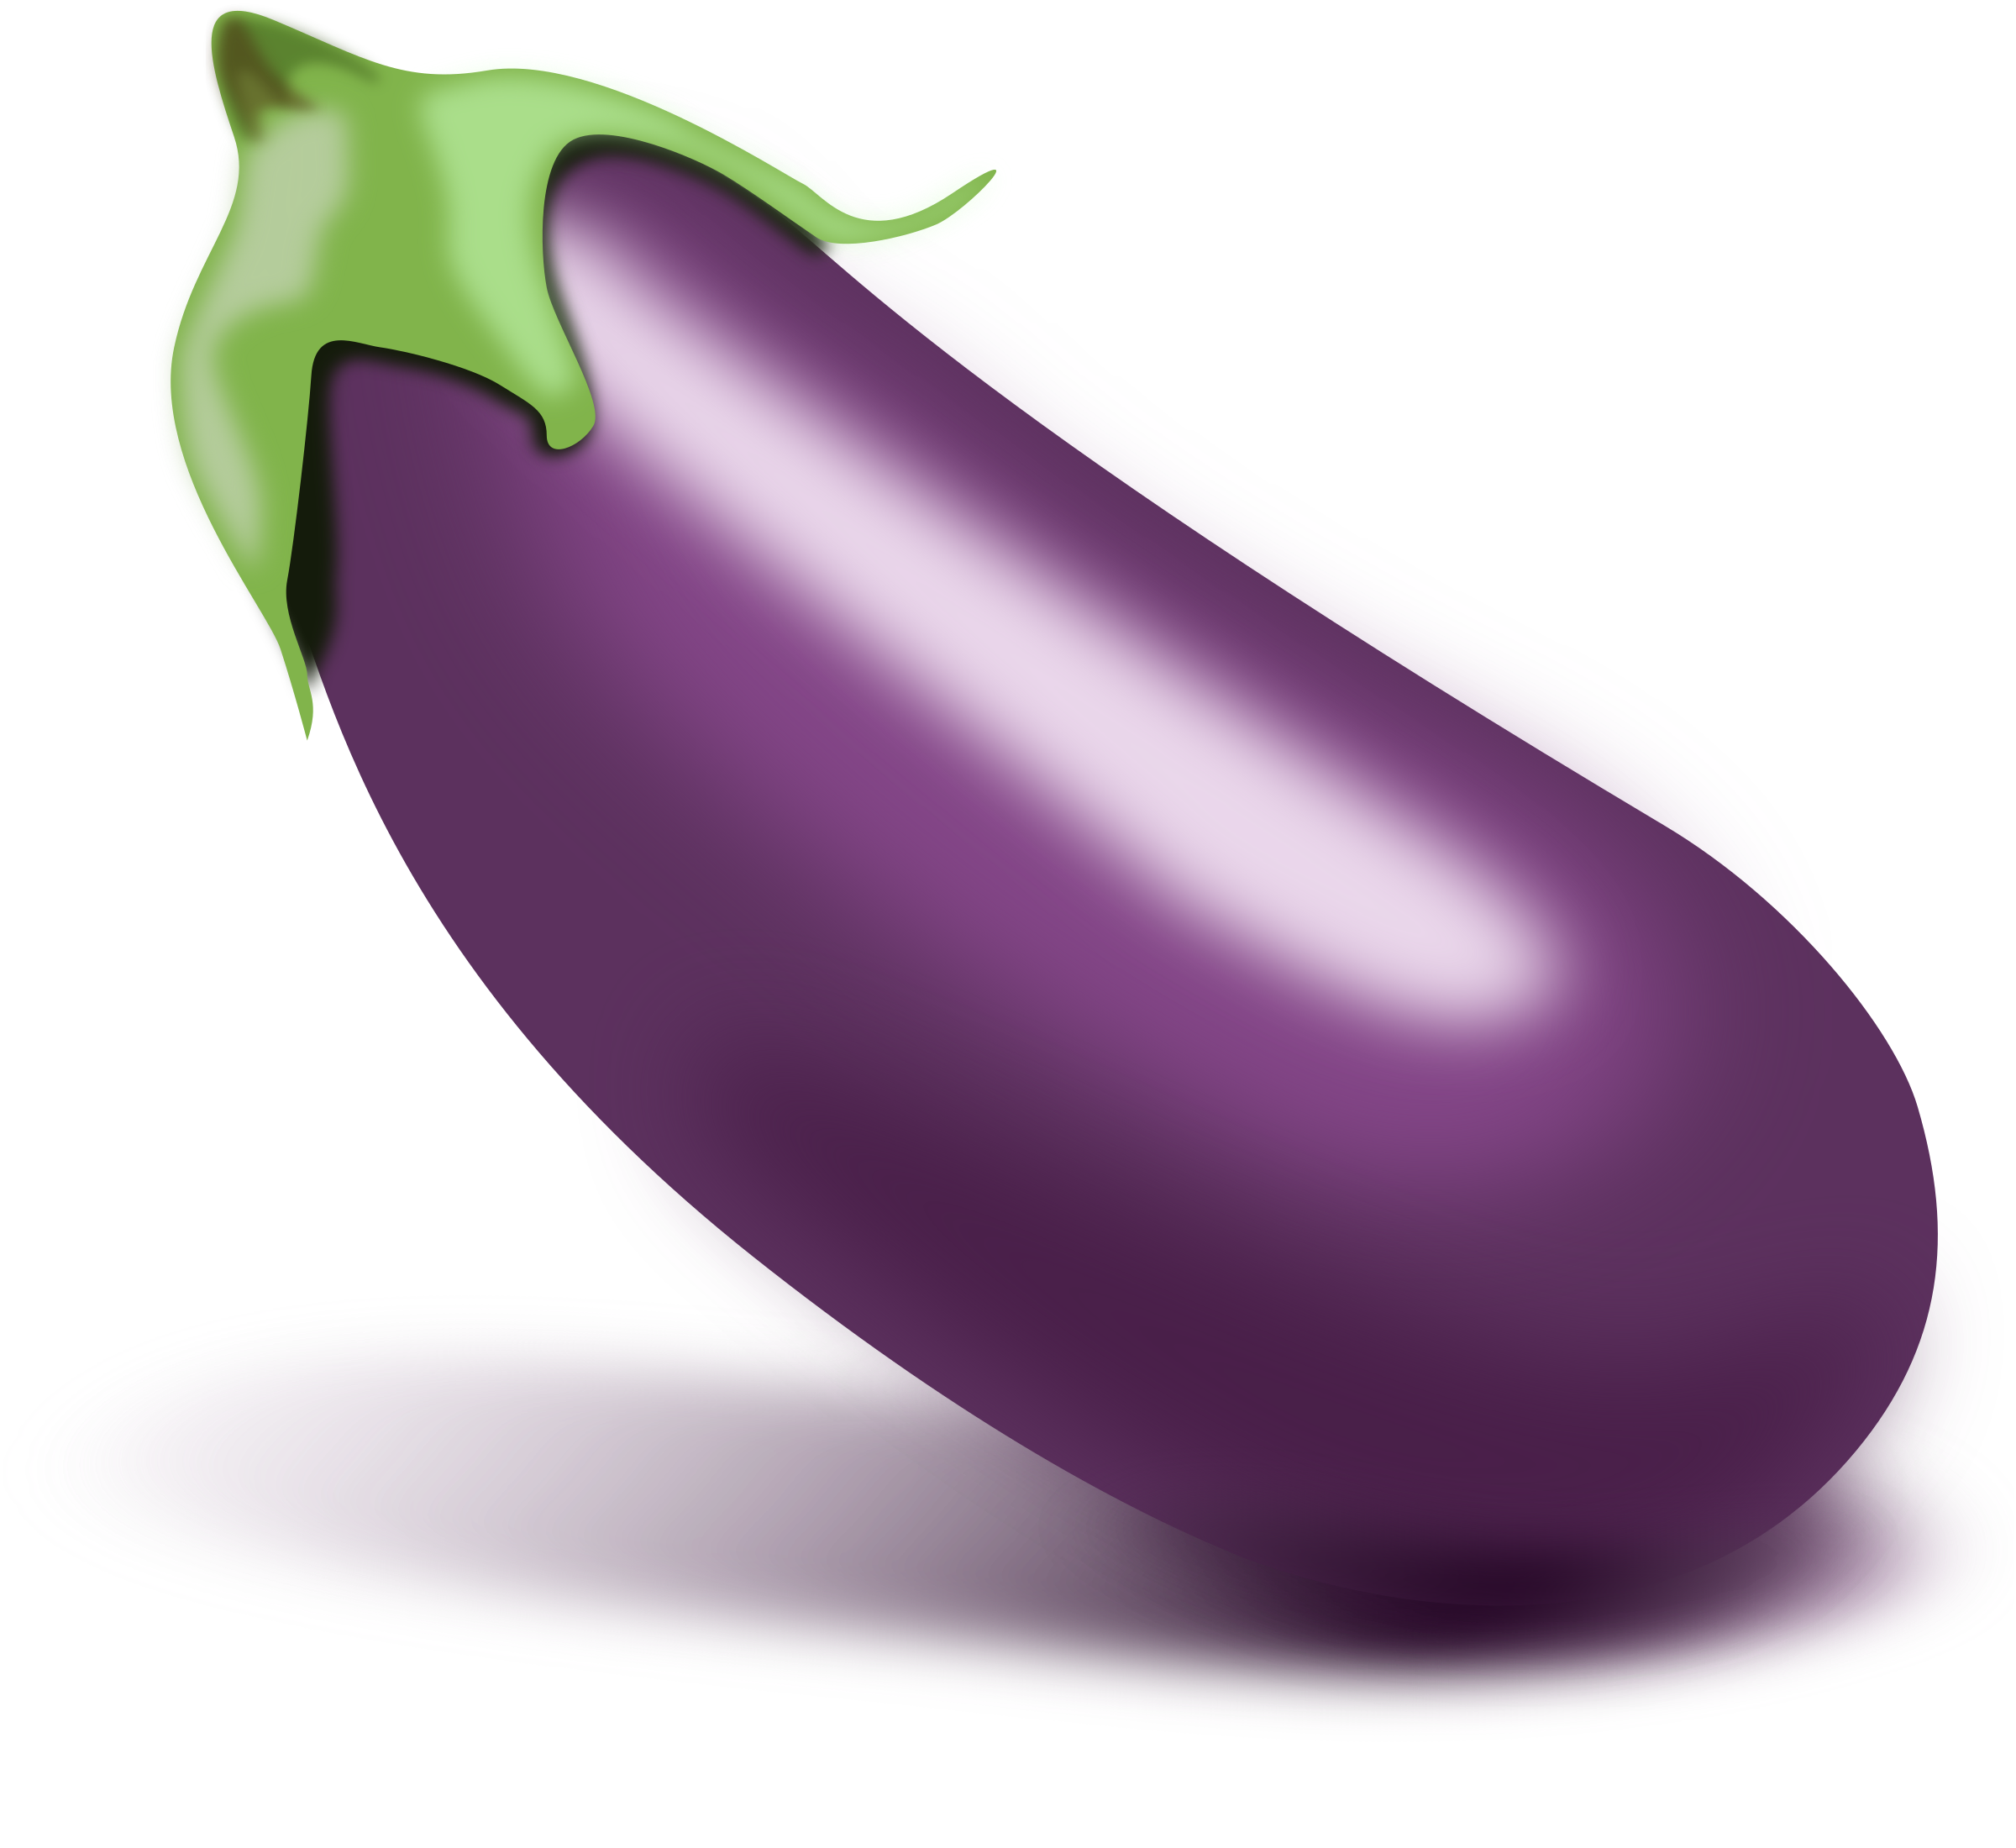 royalty free Eggplant clipart. Isolated big image png